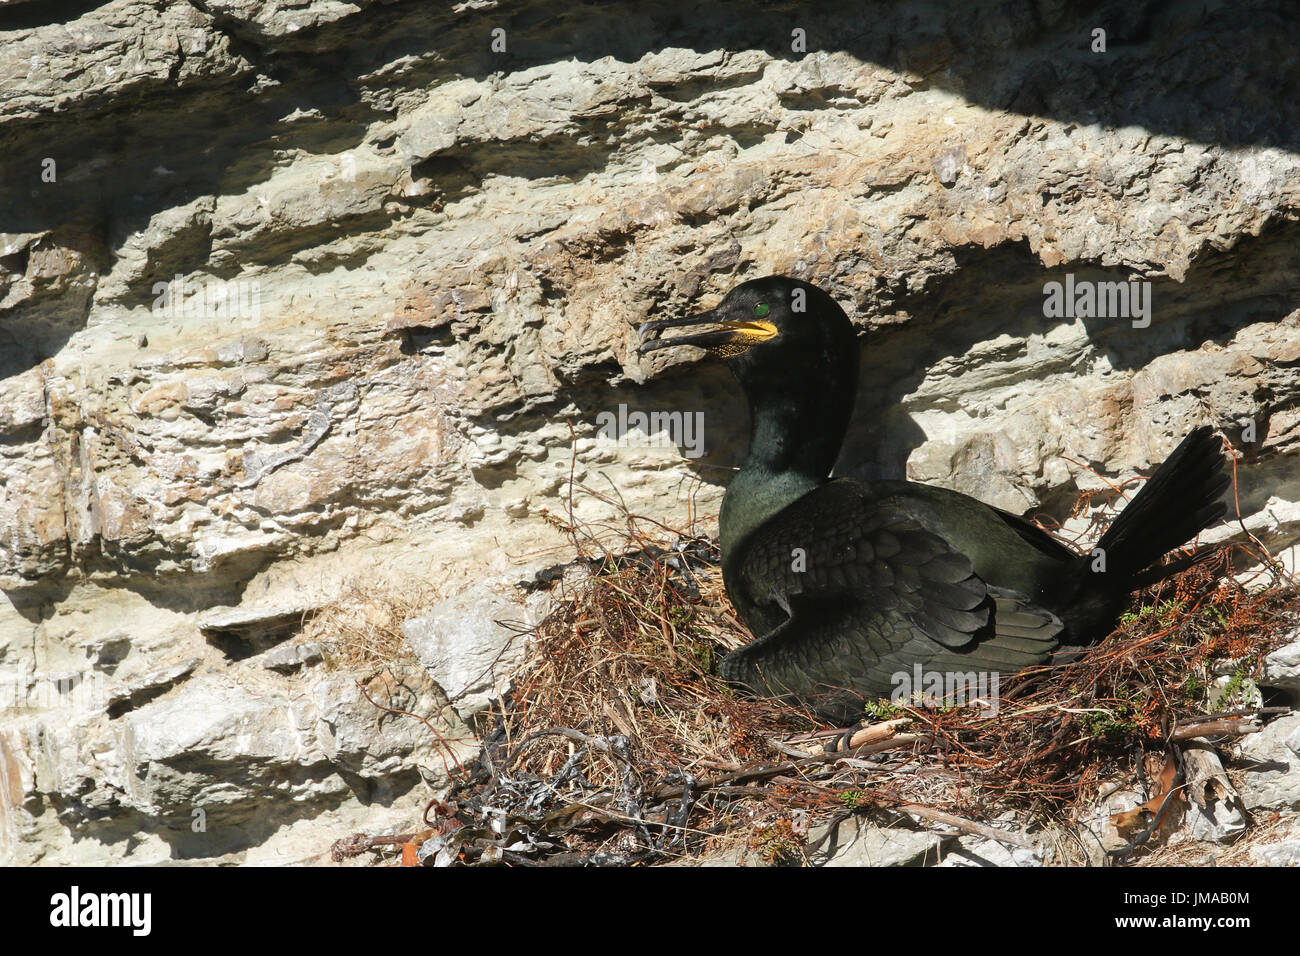 A Shag (Phalacrocorax aristotelis) sitting on its nest on the cliffs, with its baby showing underneath it. - Stock Image